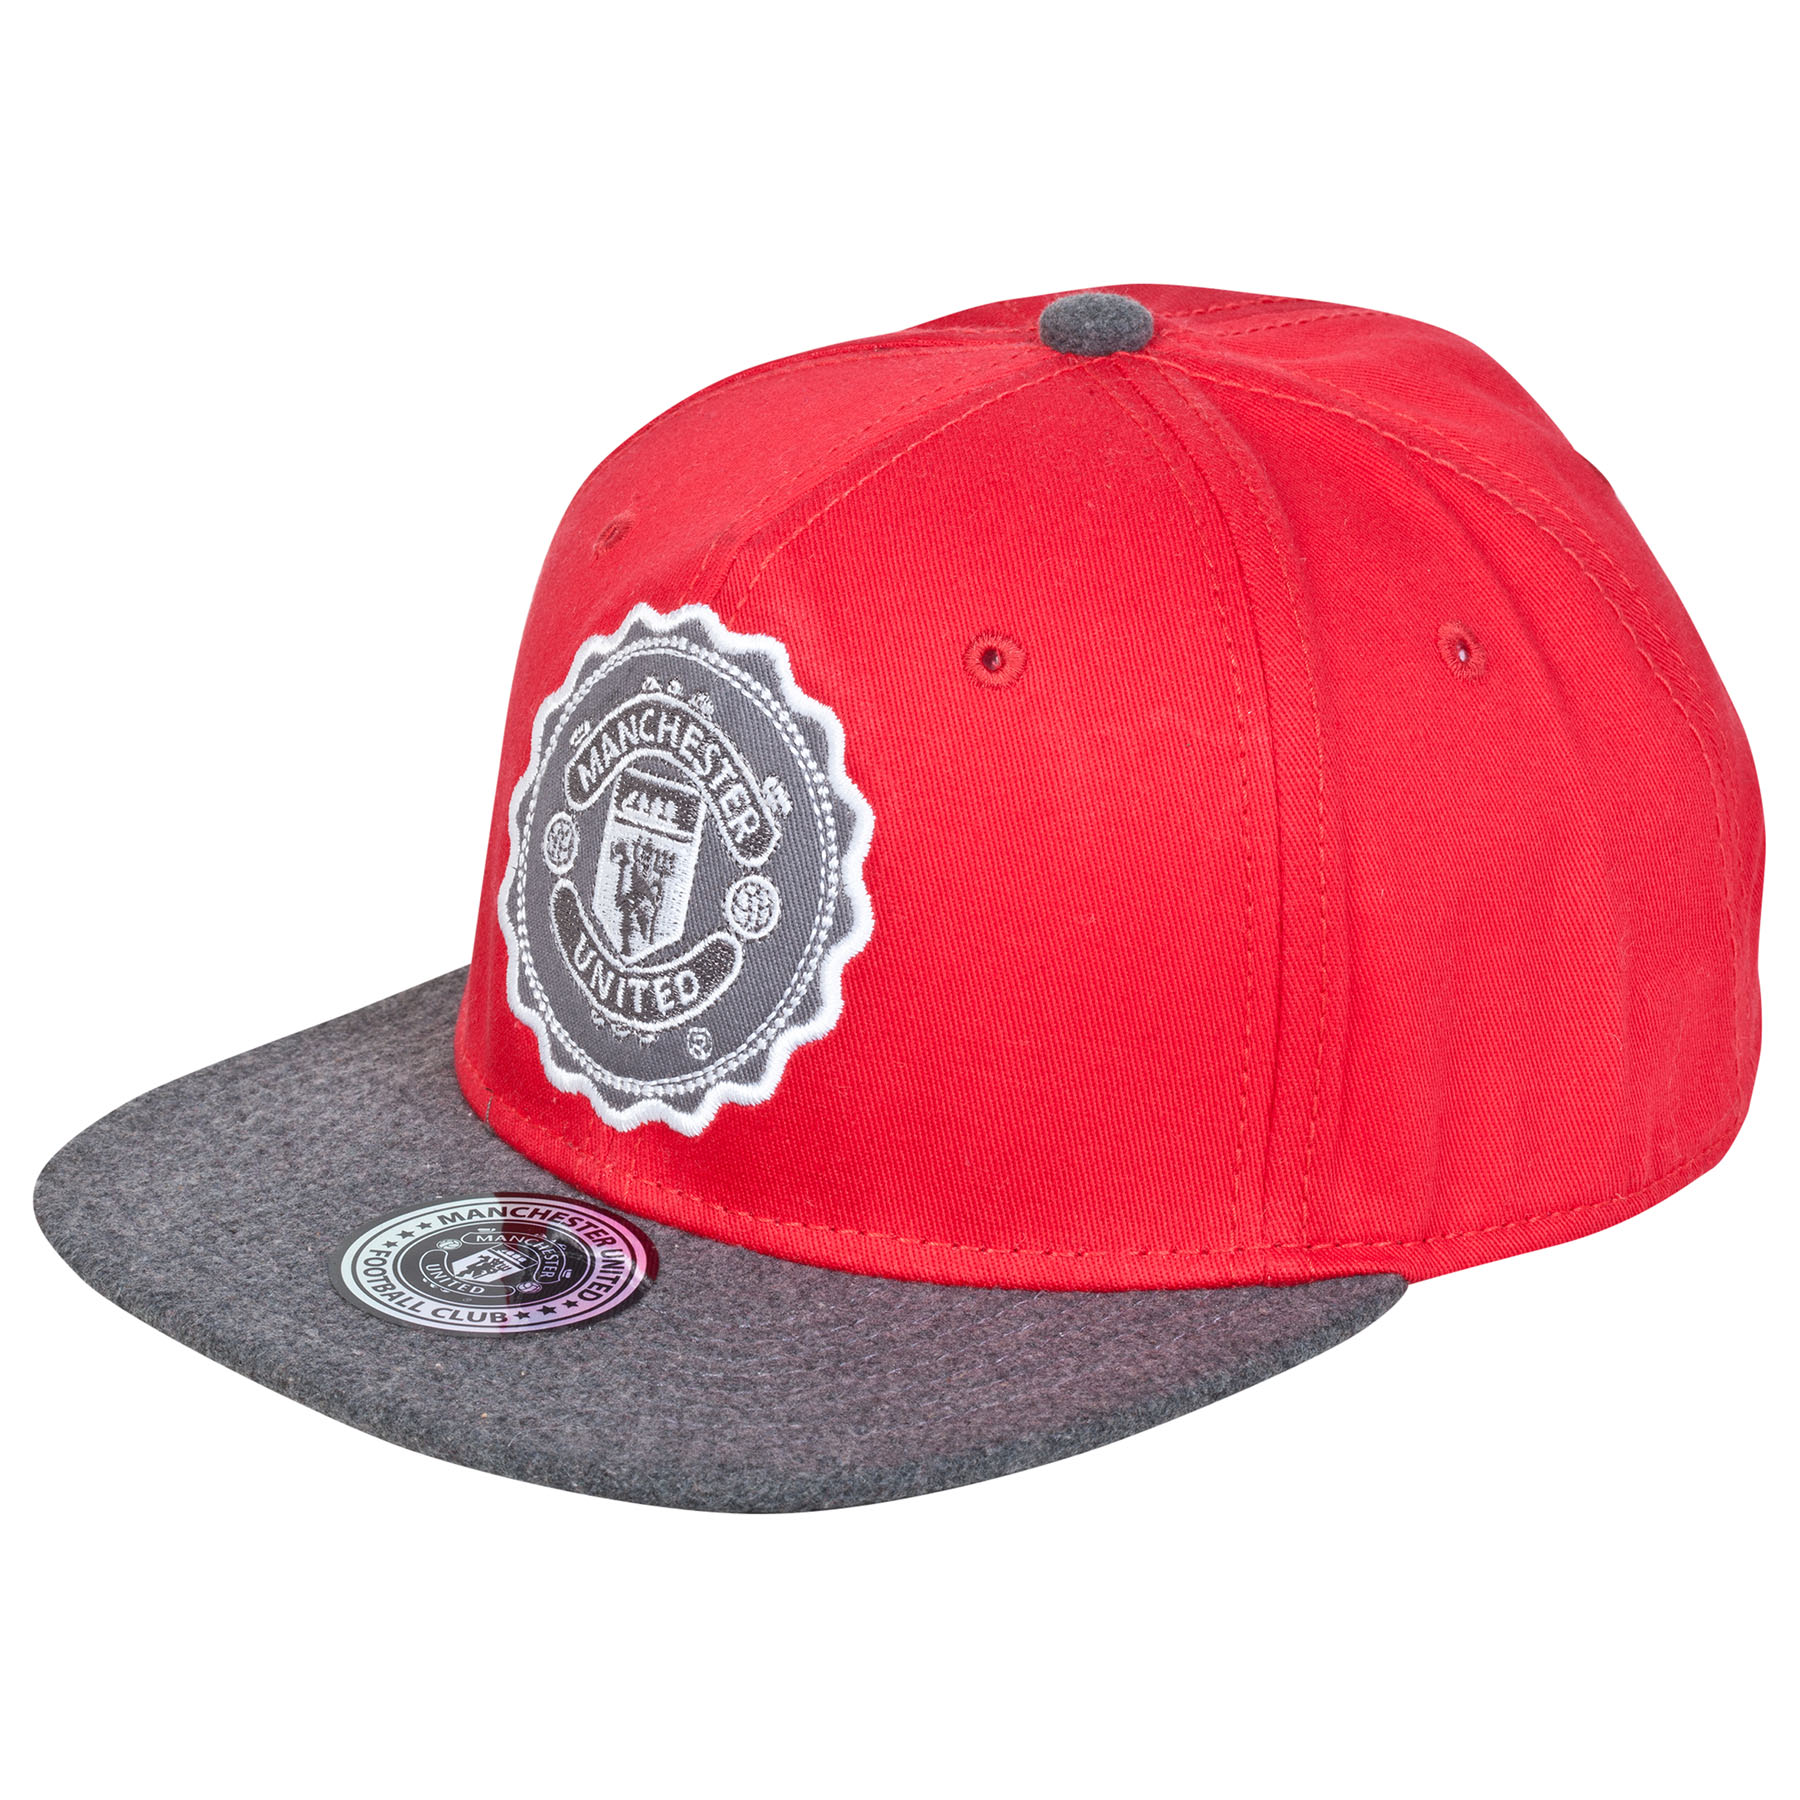 Manchester United Onside Snap Back Cap - Red - Kids